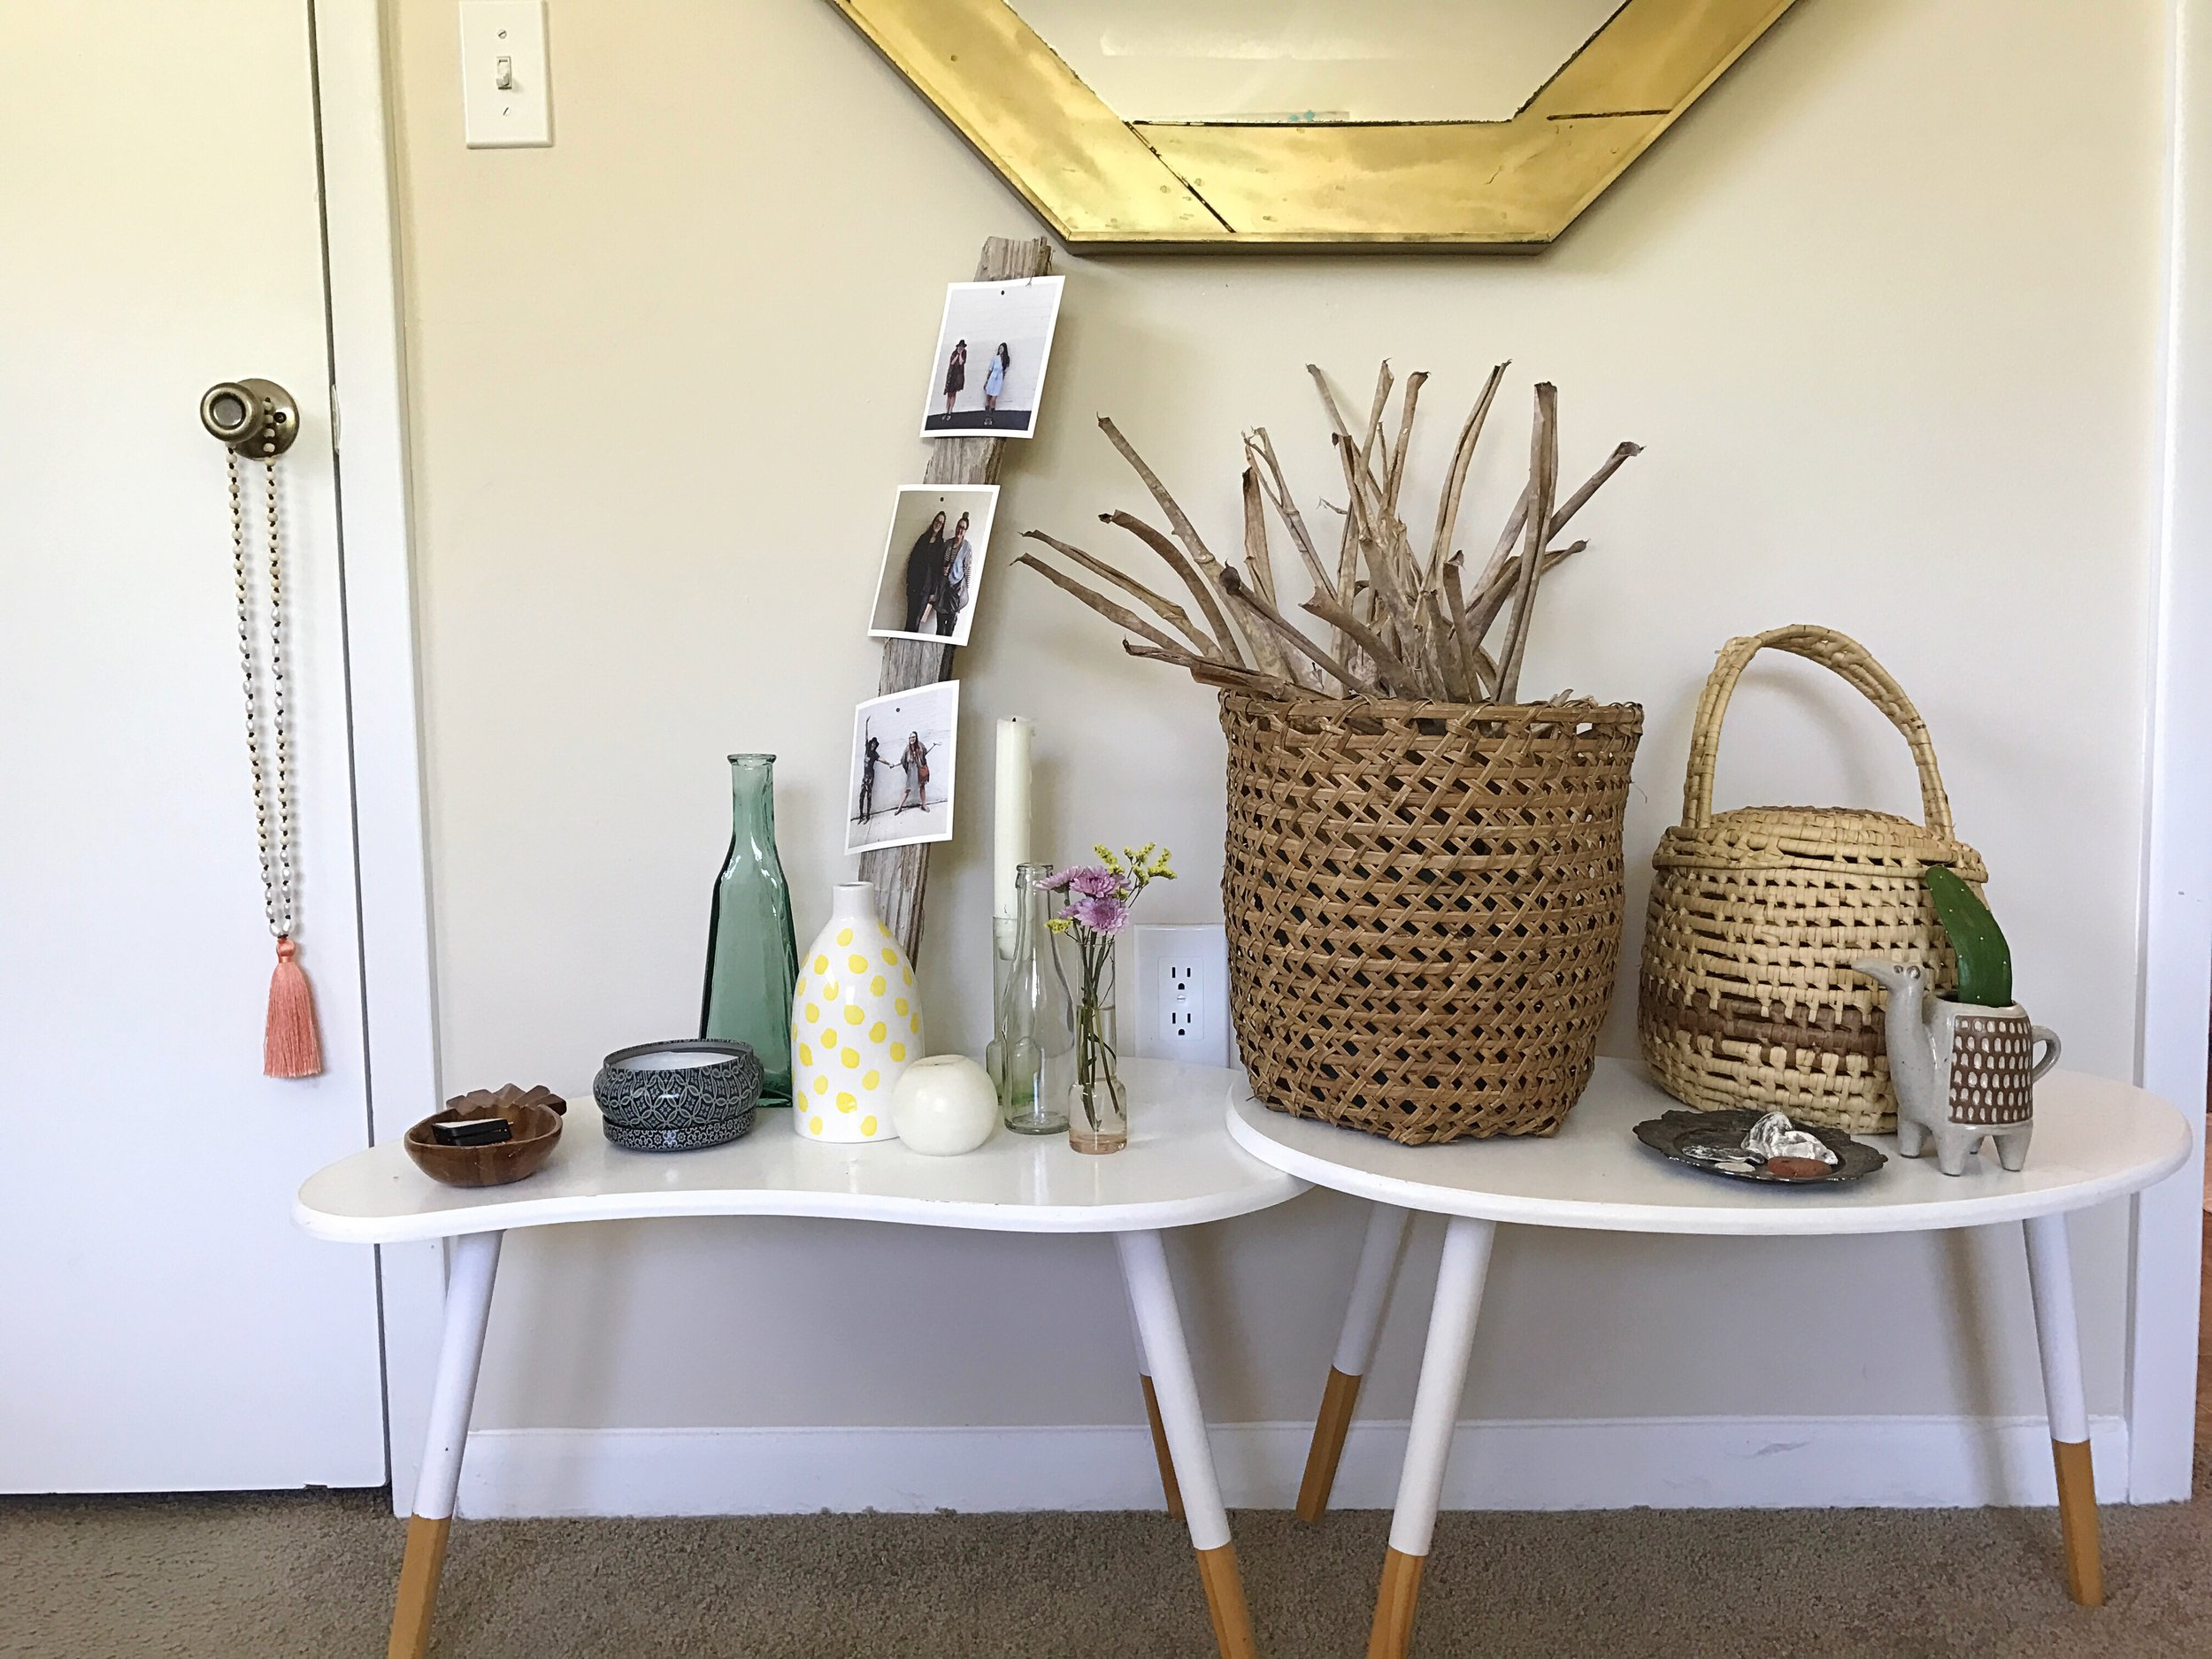 The baskets were thrifted. All of the vases (including the camel) were thrifted. That mirror was a totally unexpected thrifting find. I scored him for $15.